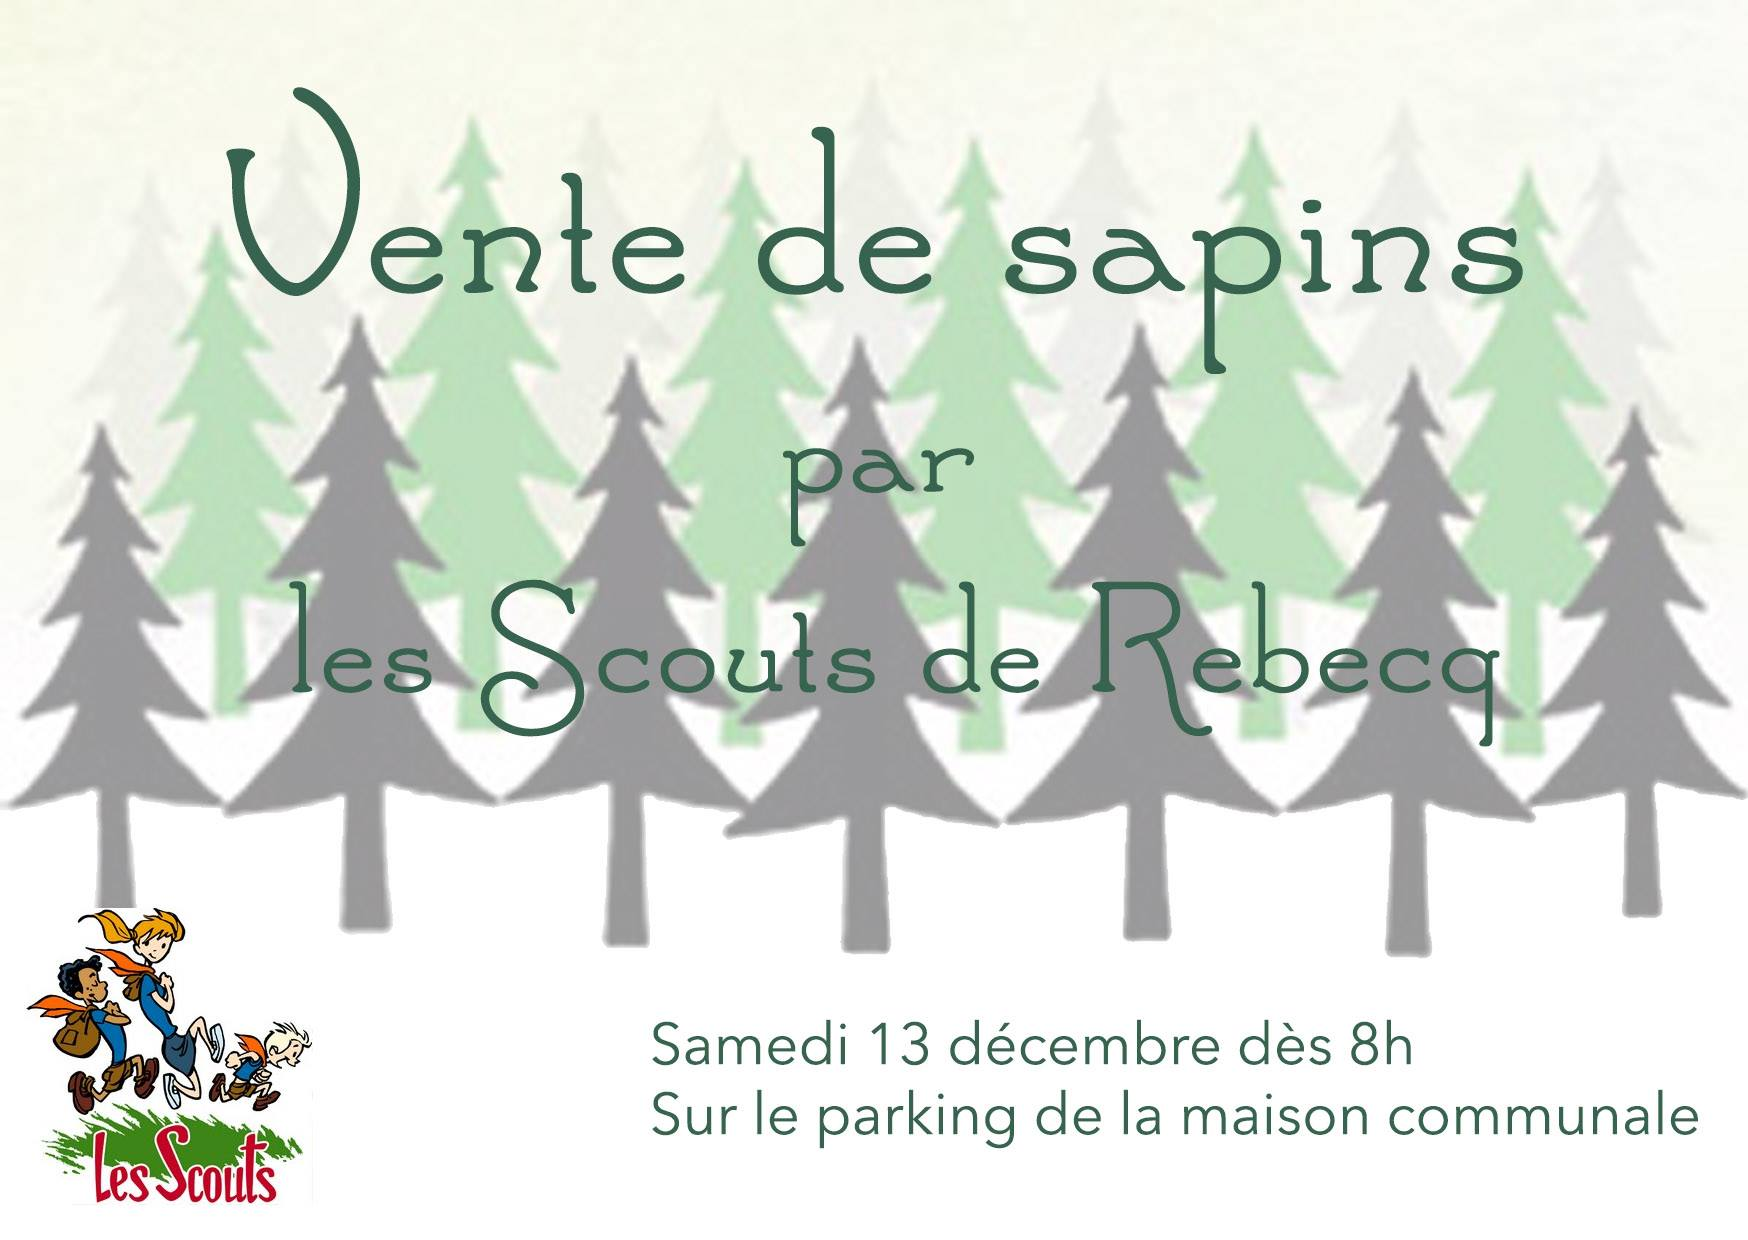 vente de sapins de no l journal d 39 informations des scouts de rebecq. Black Bedroom Furniture Sets. Home Design Ideas